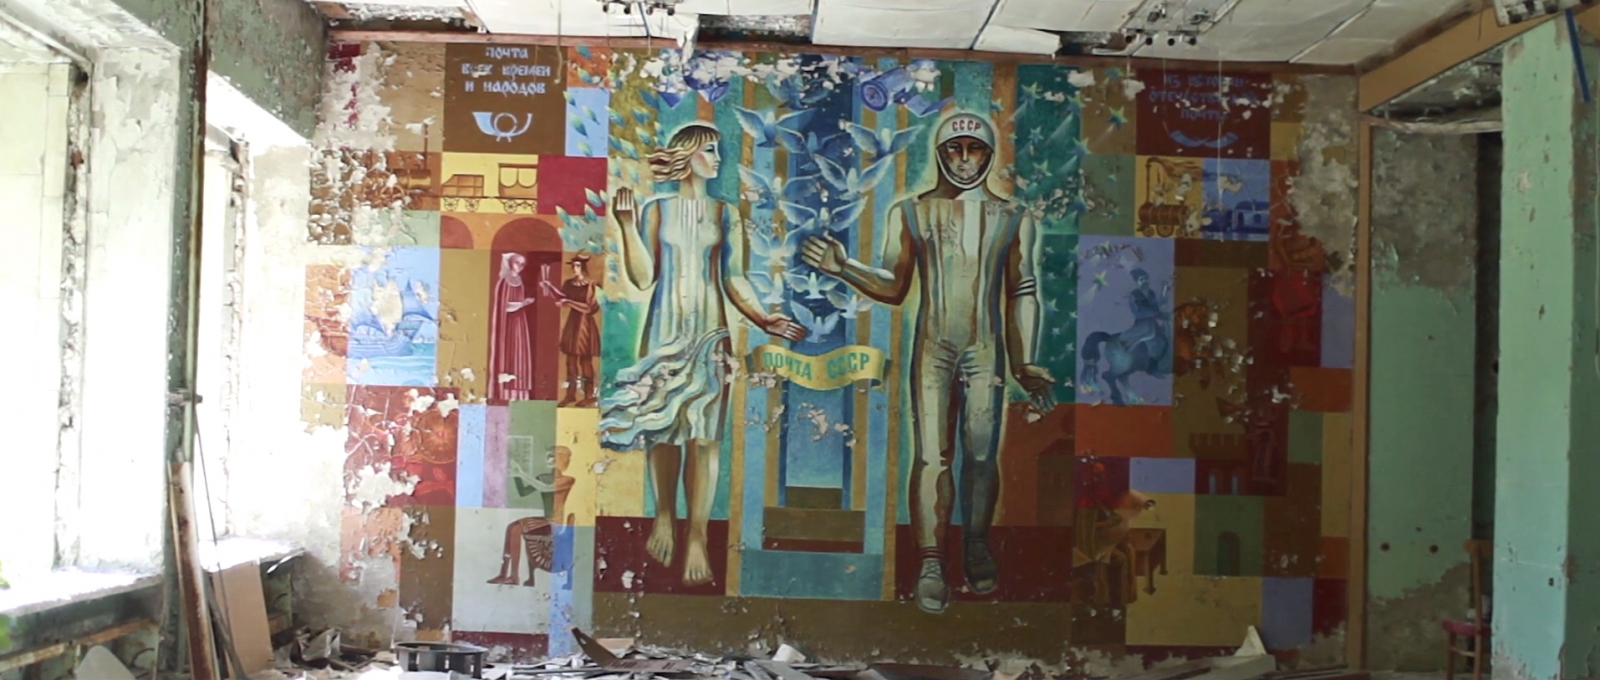 Beautiful mural art in a building in Pripyat, Chernobyl